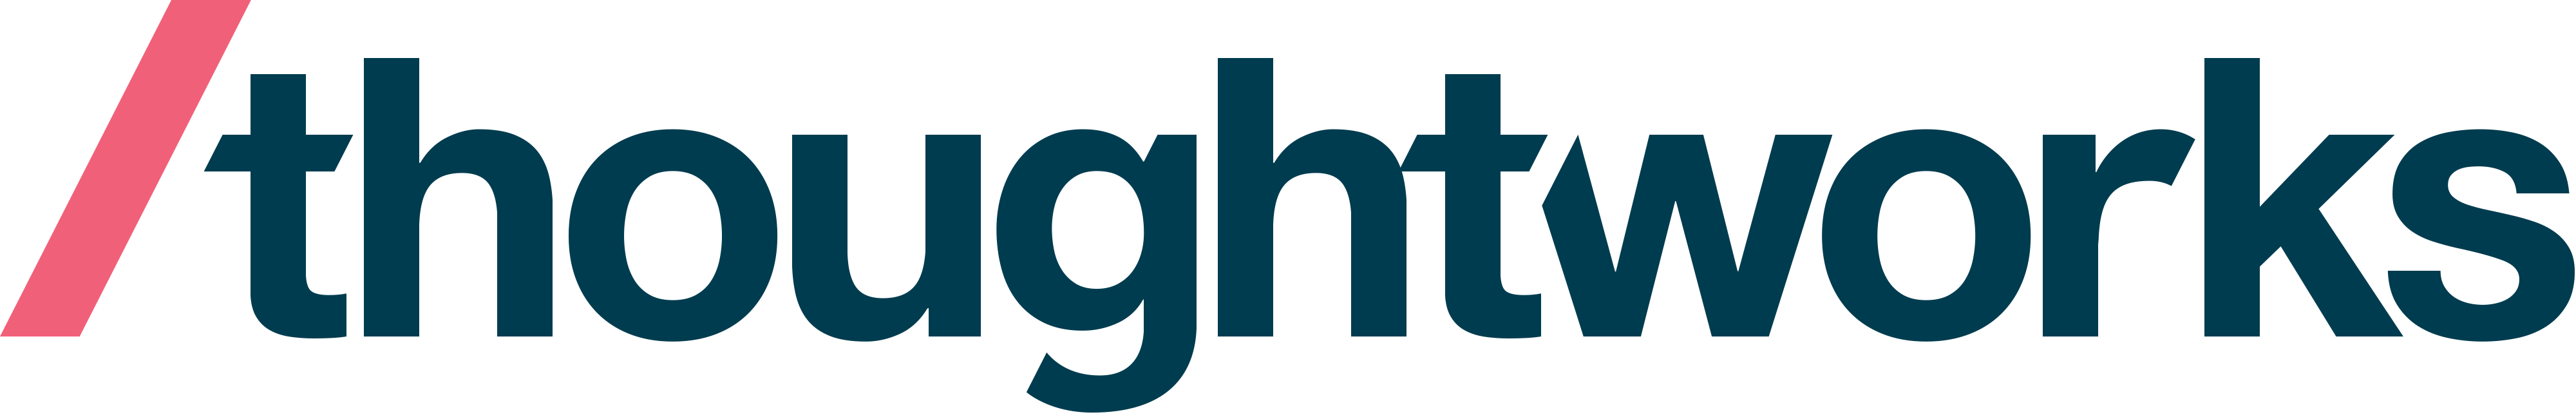 IPO Thoughtworks Holding